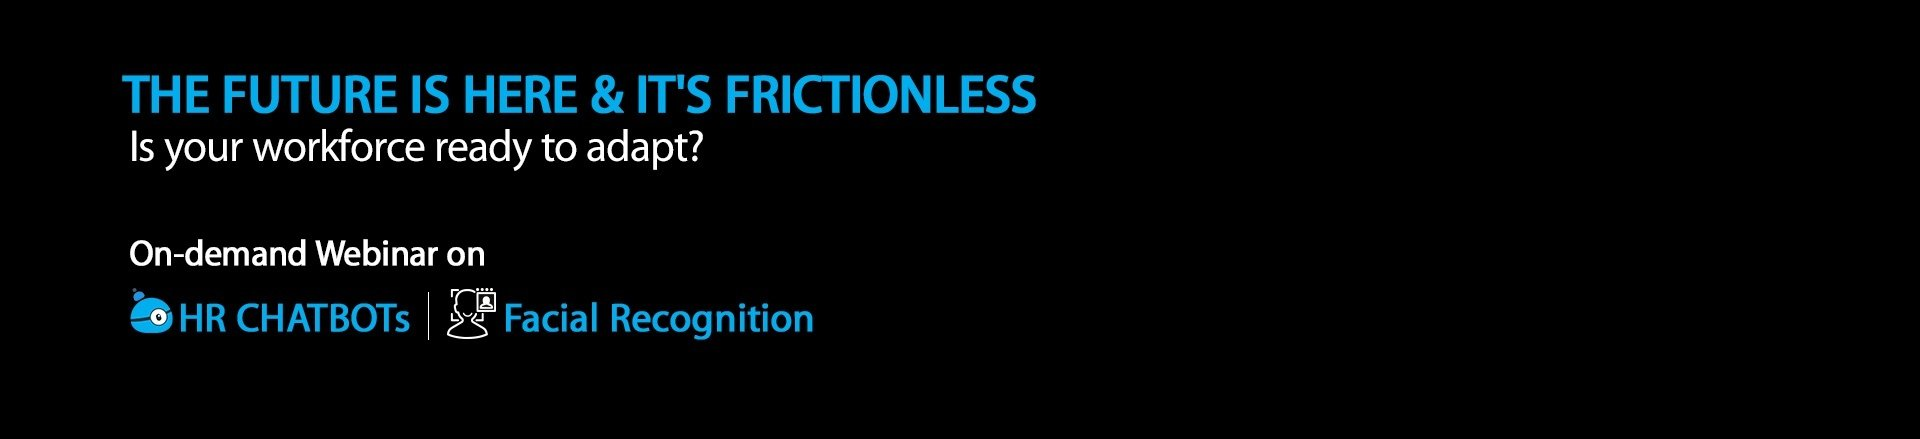 Frictionless-Computing-banner-new.jpg